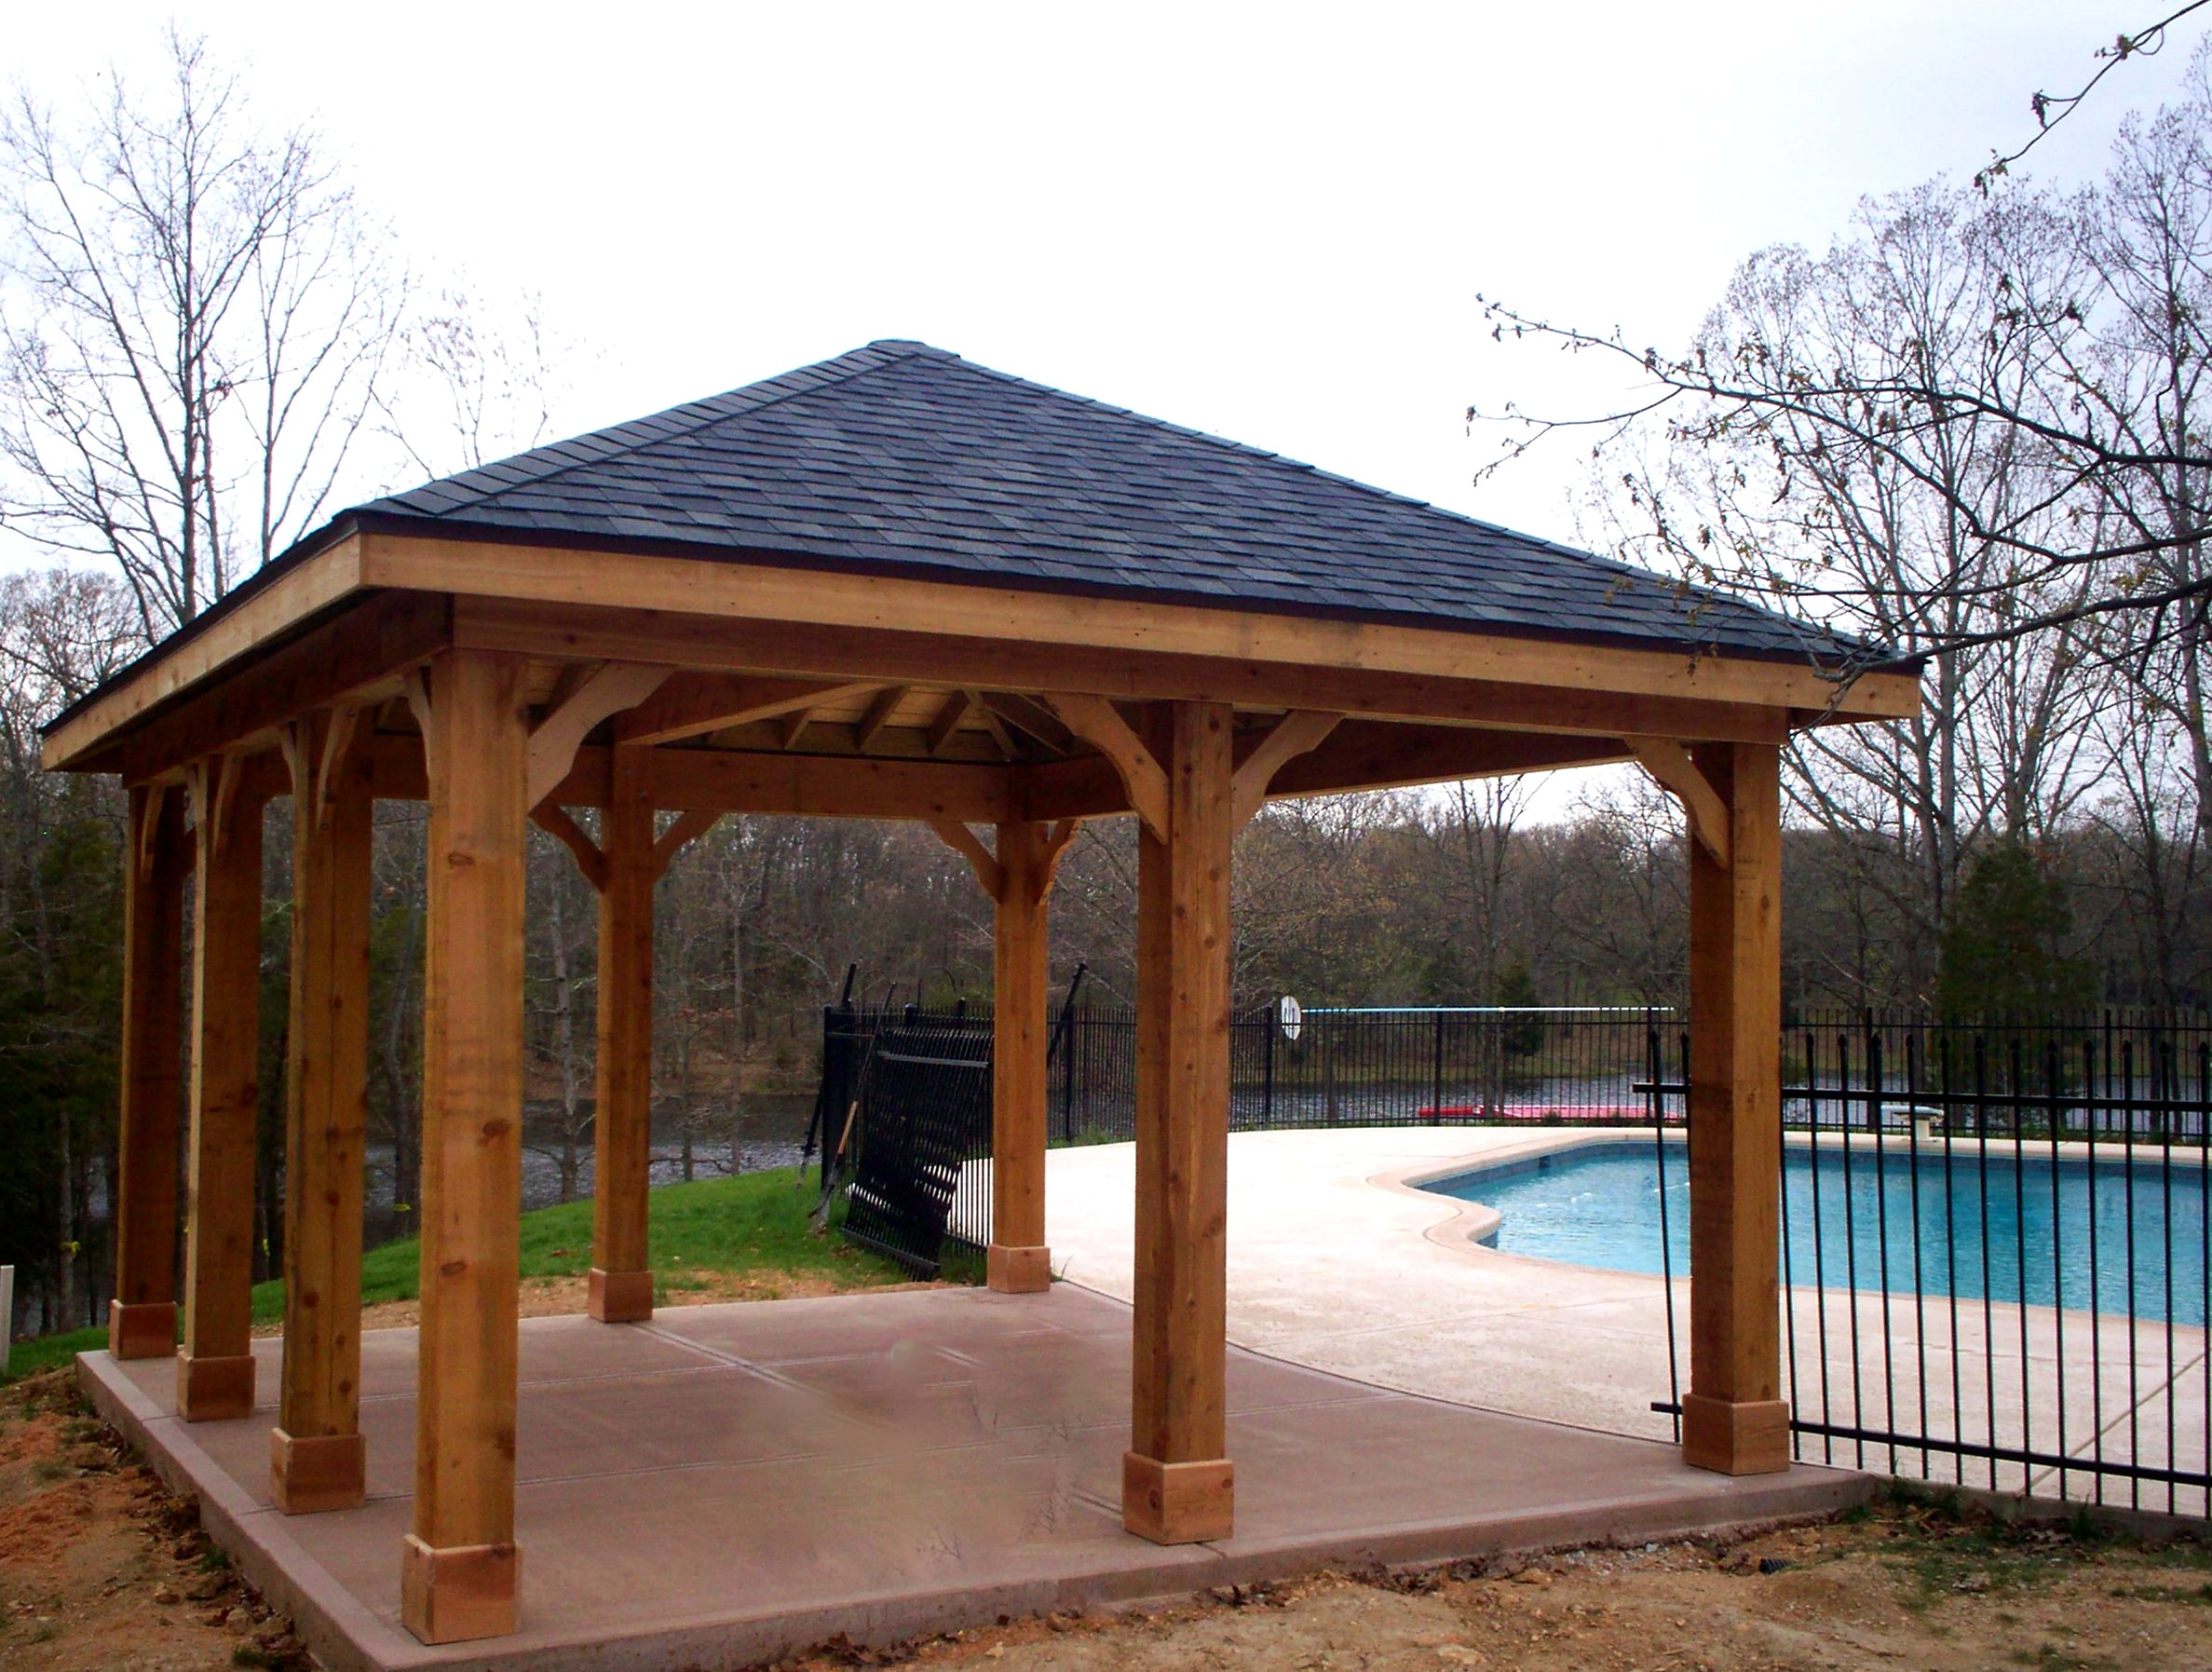 Roof Design Ideas: Patio Covers For Shade And Style